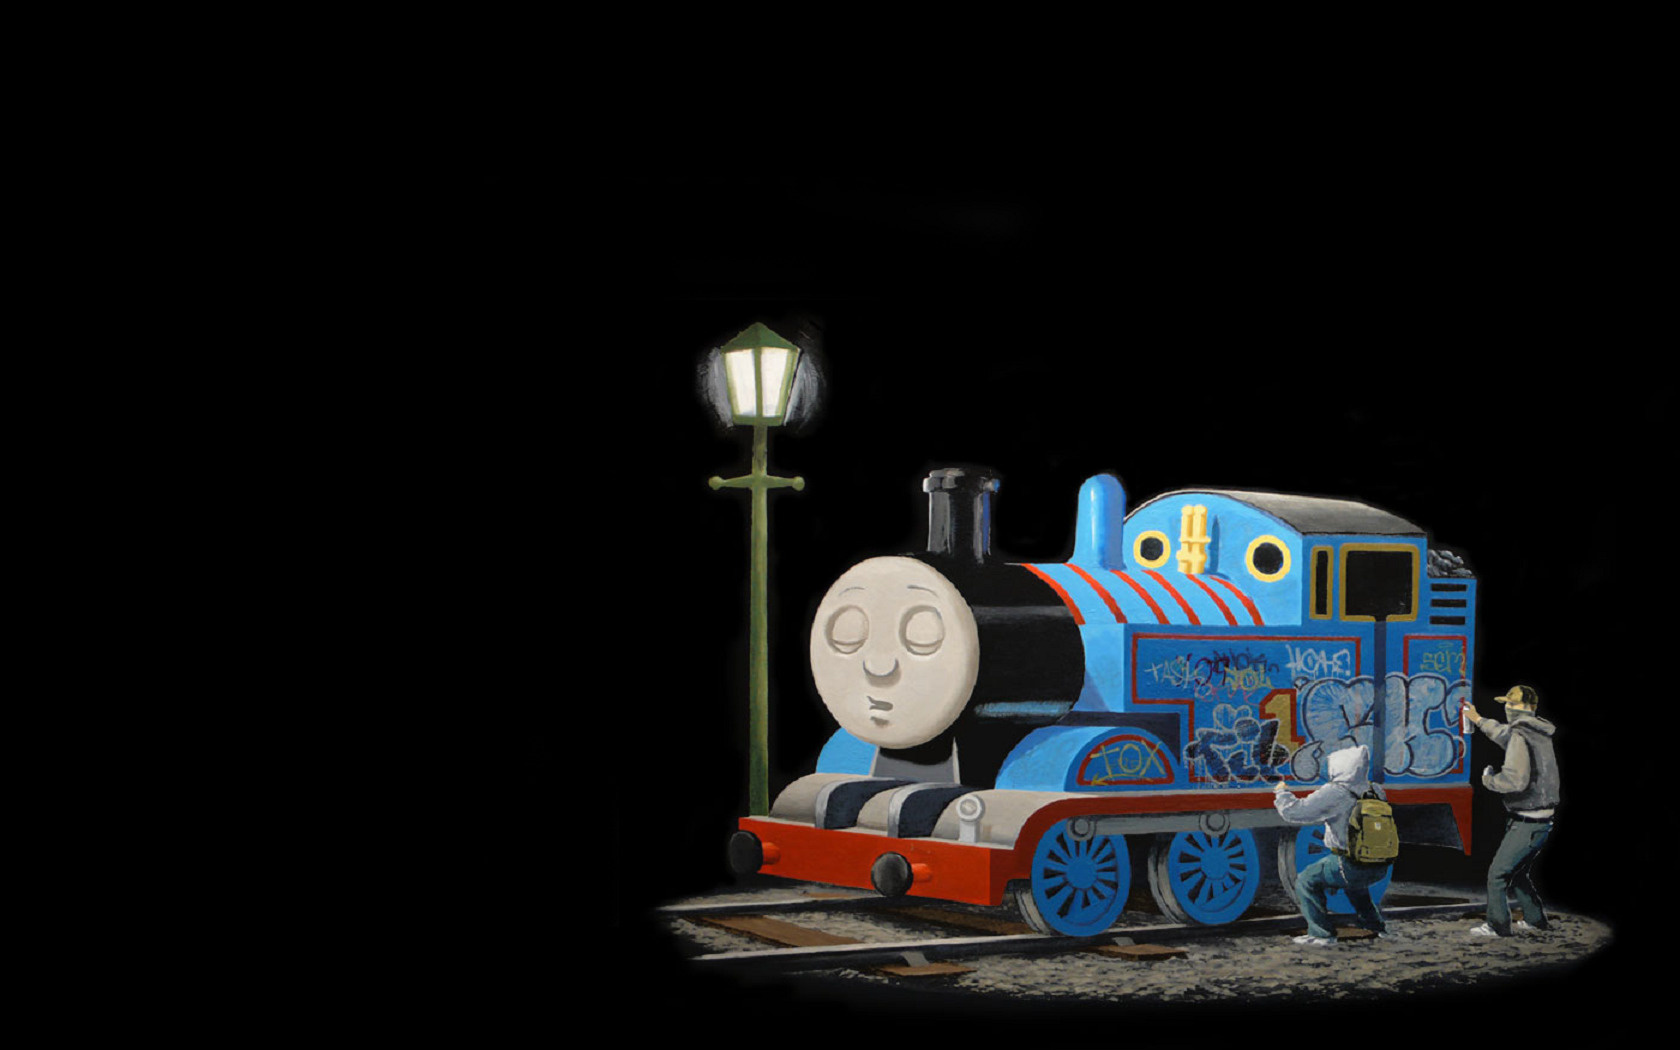 Thomas The Tank Engine Wallpaper - WallpaperSafari